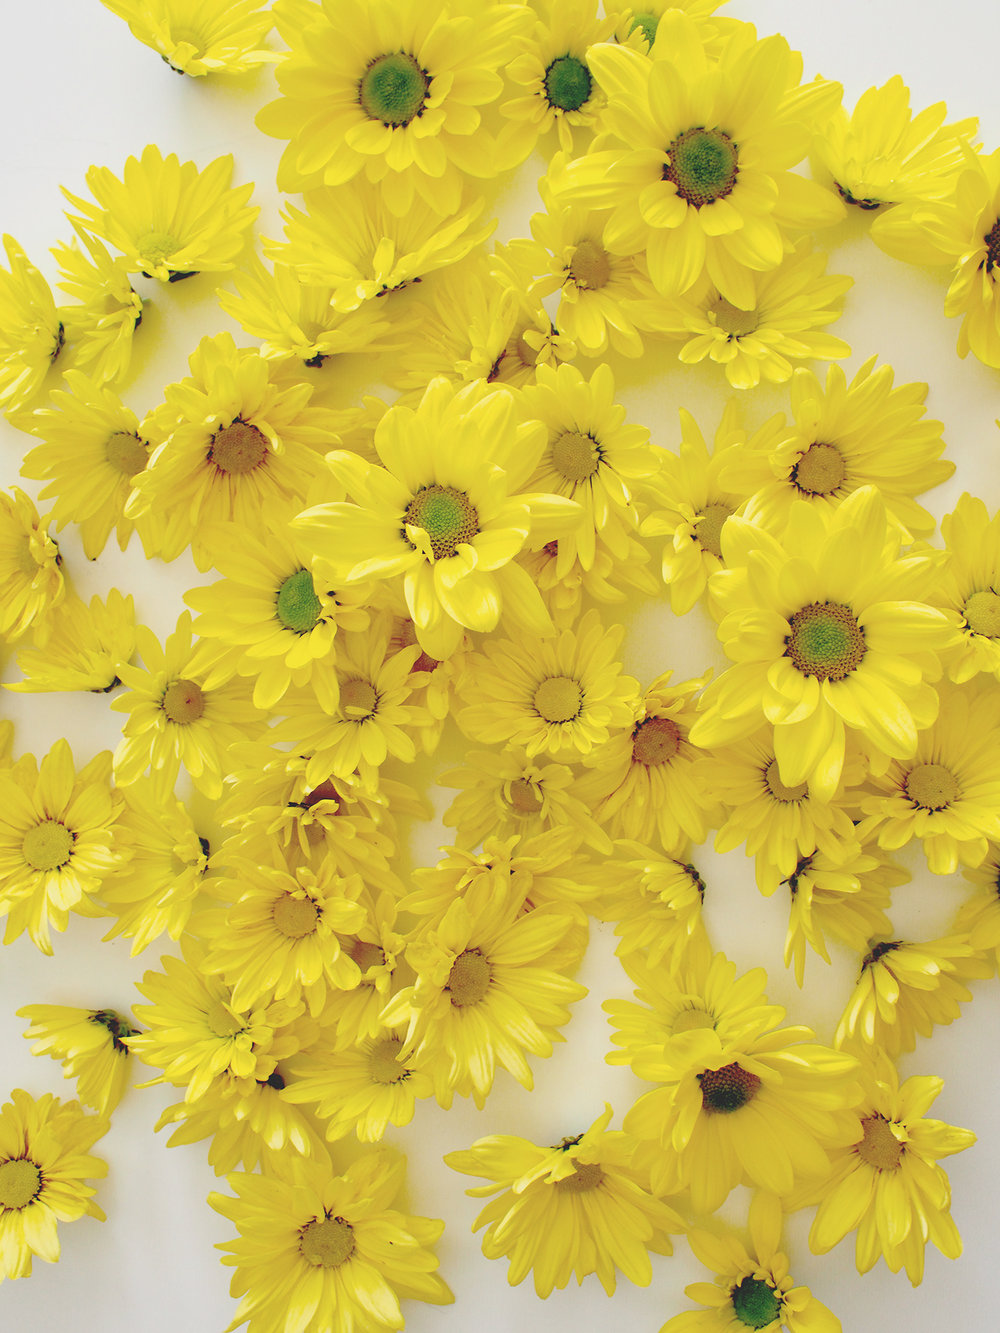 Piles of mums for a Fall DIY | A Fabulous Fete